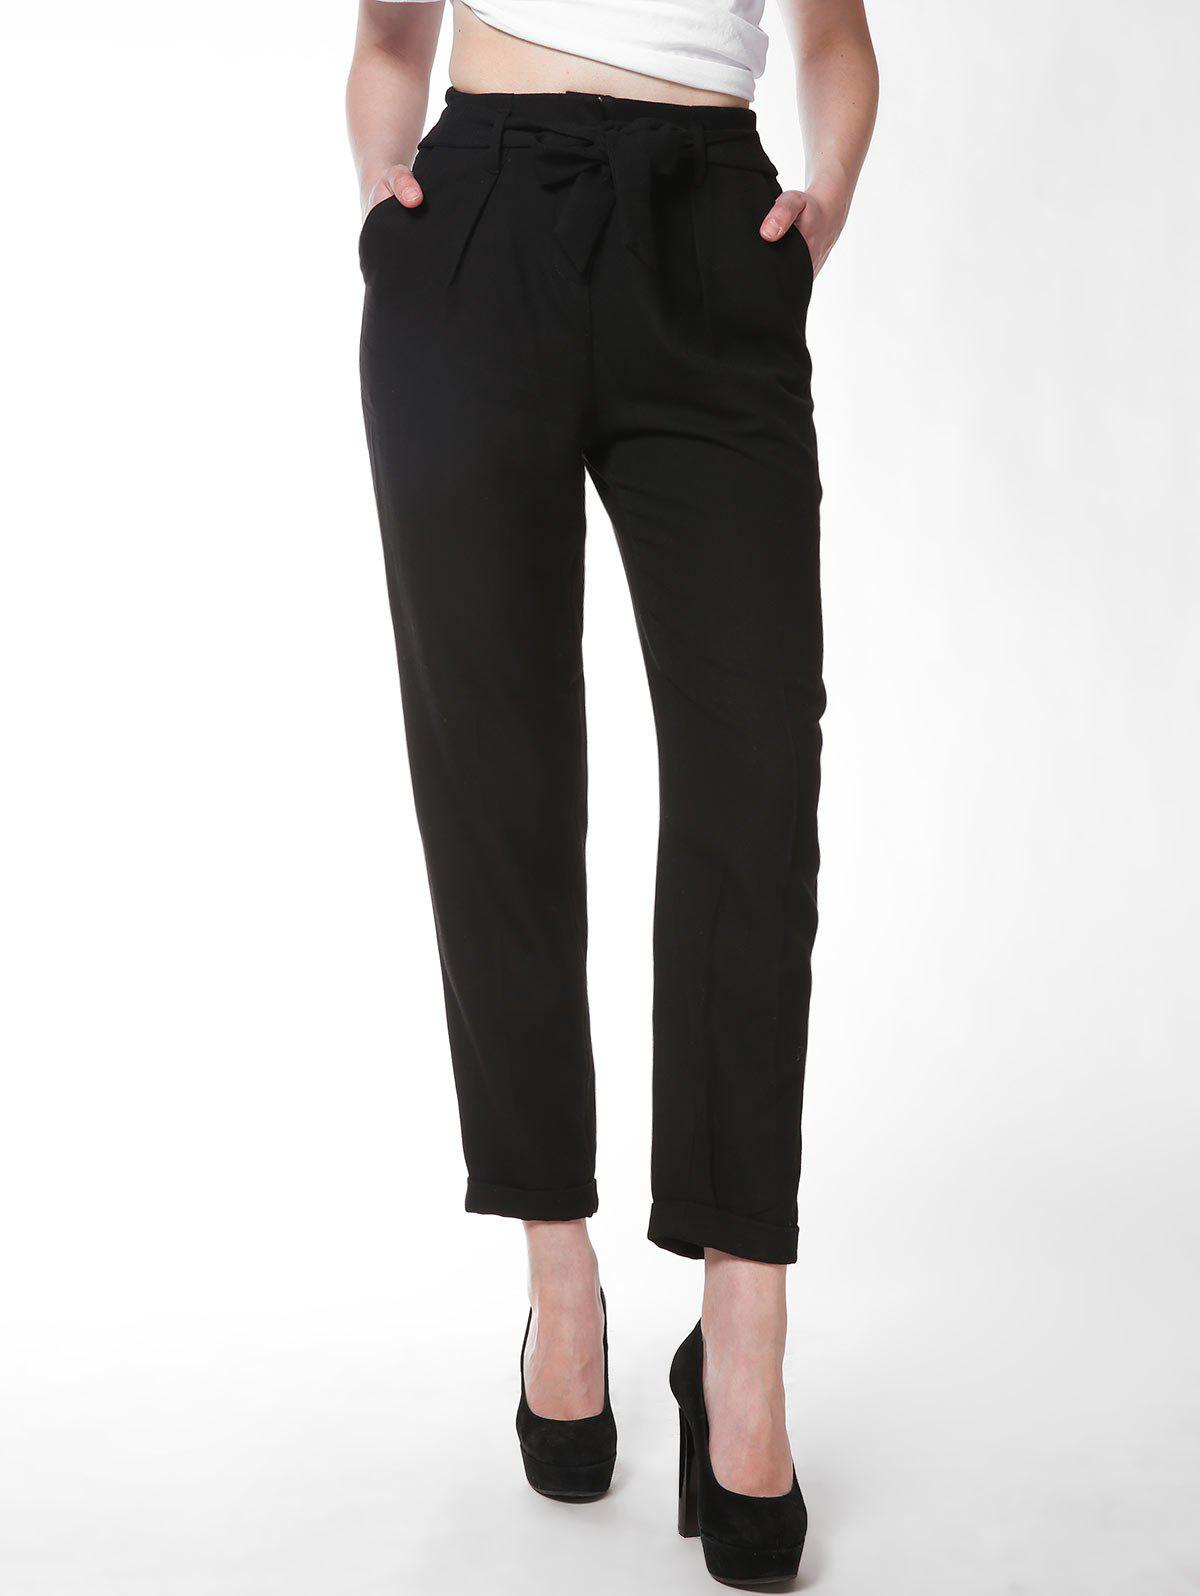 Fancy FRENCH BAZAAR Office Lady Full Length Slim Fit Suit Pants